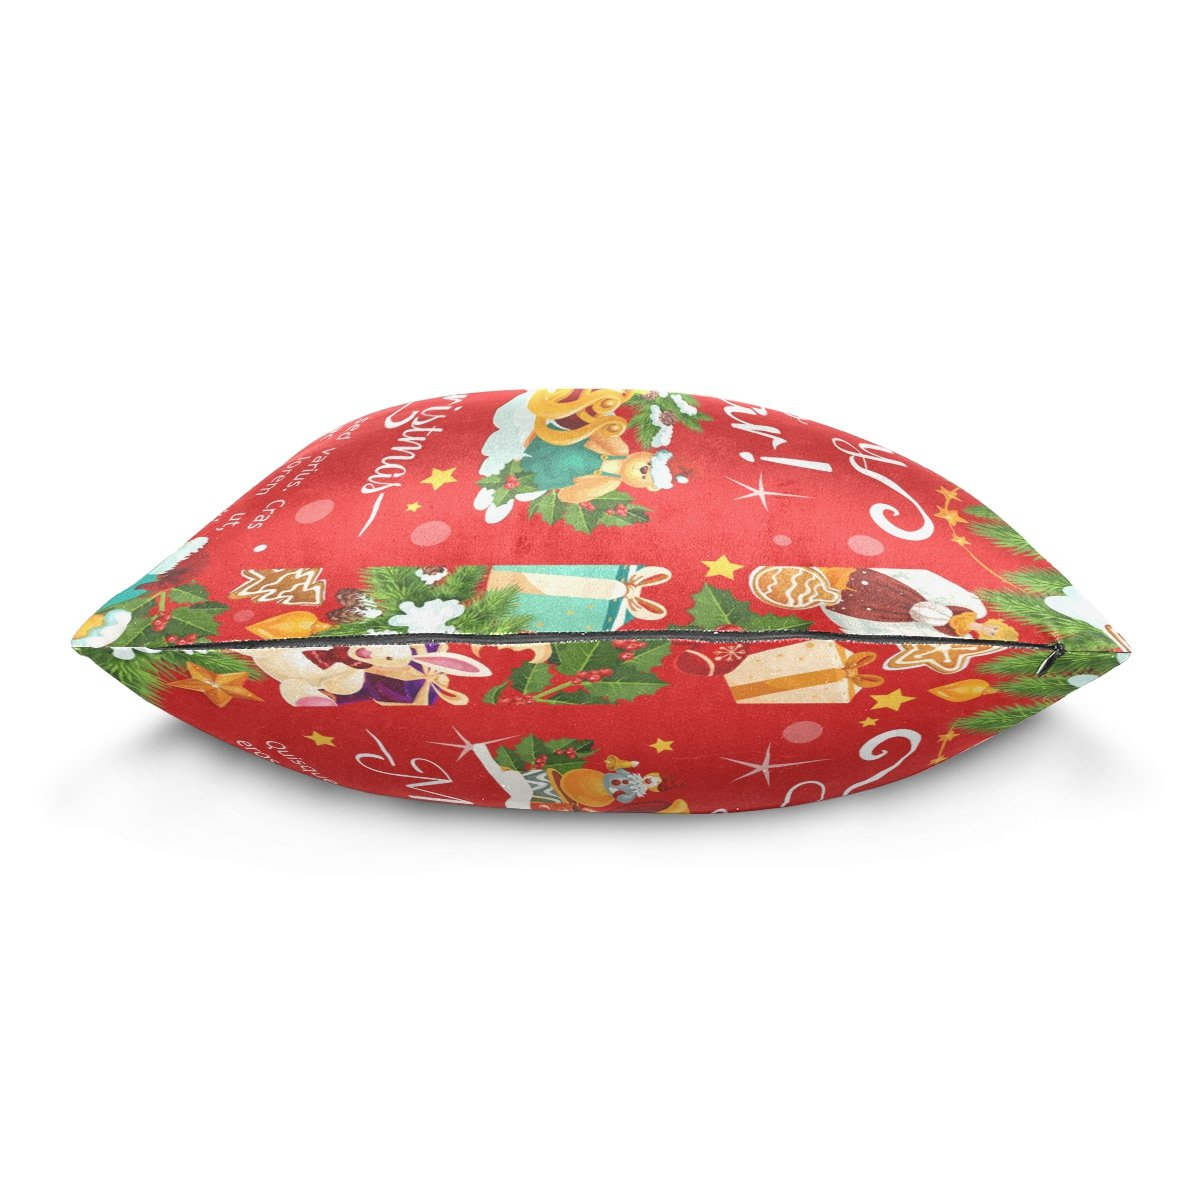 Top Carpenter Happy New Year Merry Christmas Velvet Plush Throw Pillow Cushion Case Cover - 16